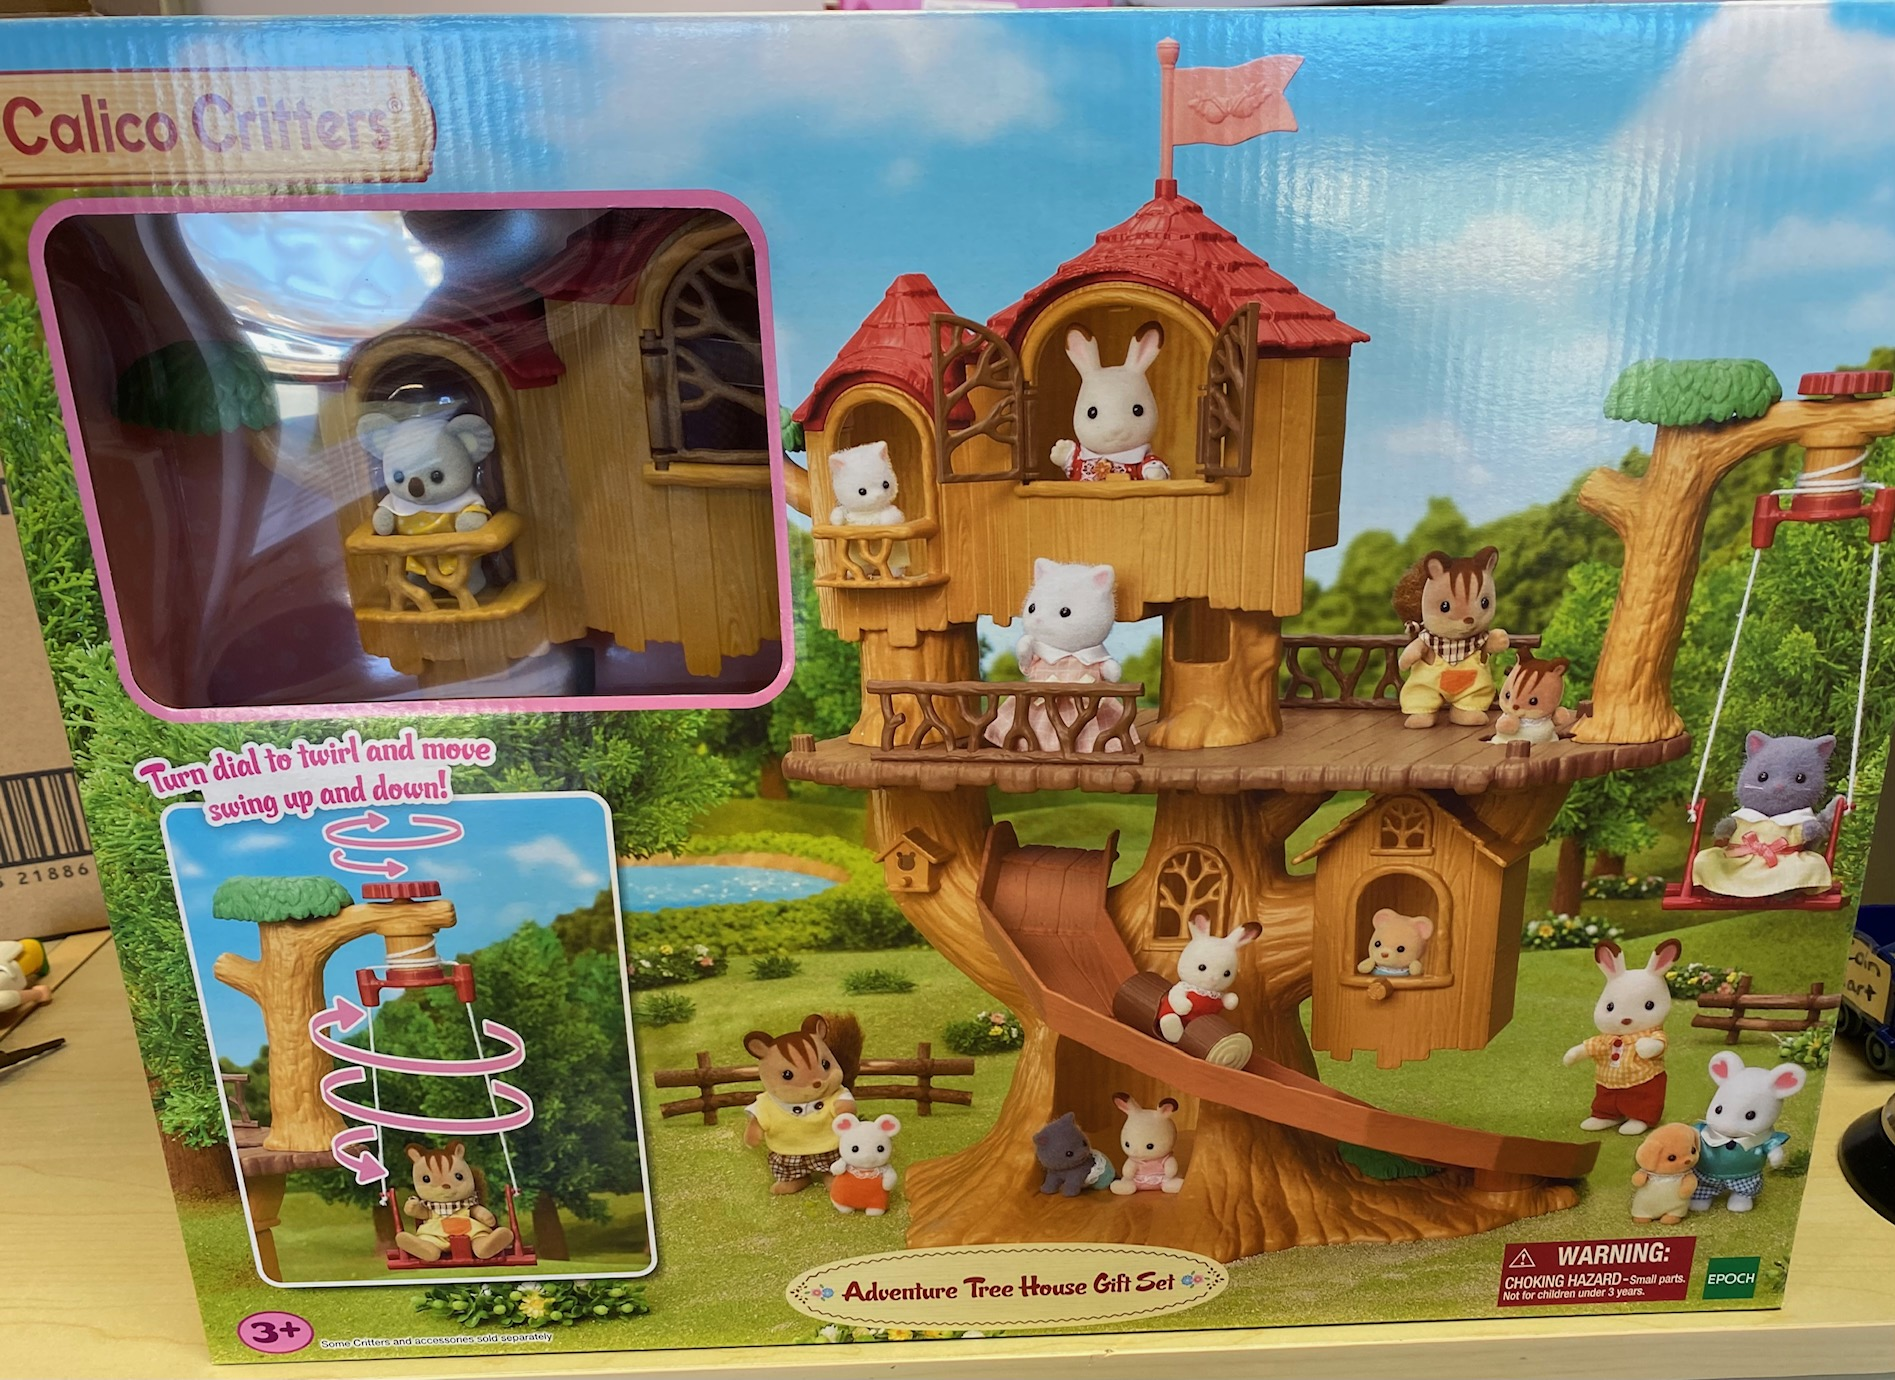 CALICO CRITTERS #1886 Adventure Tree House Gift Set- New Factory Sealed!